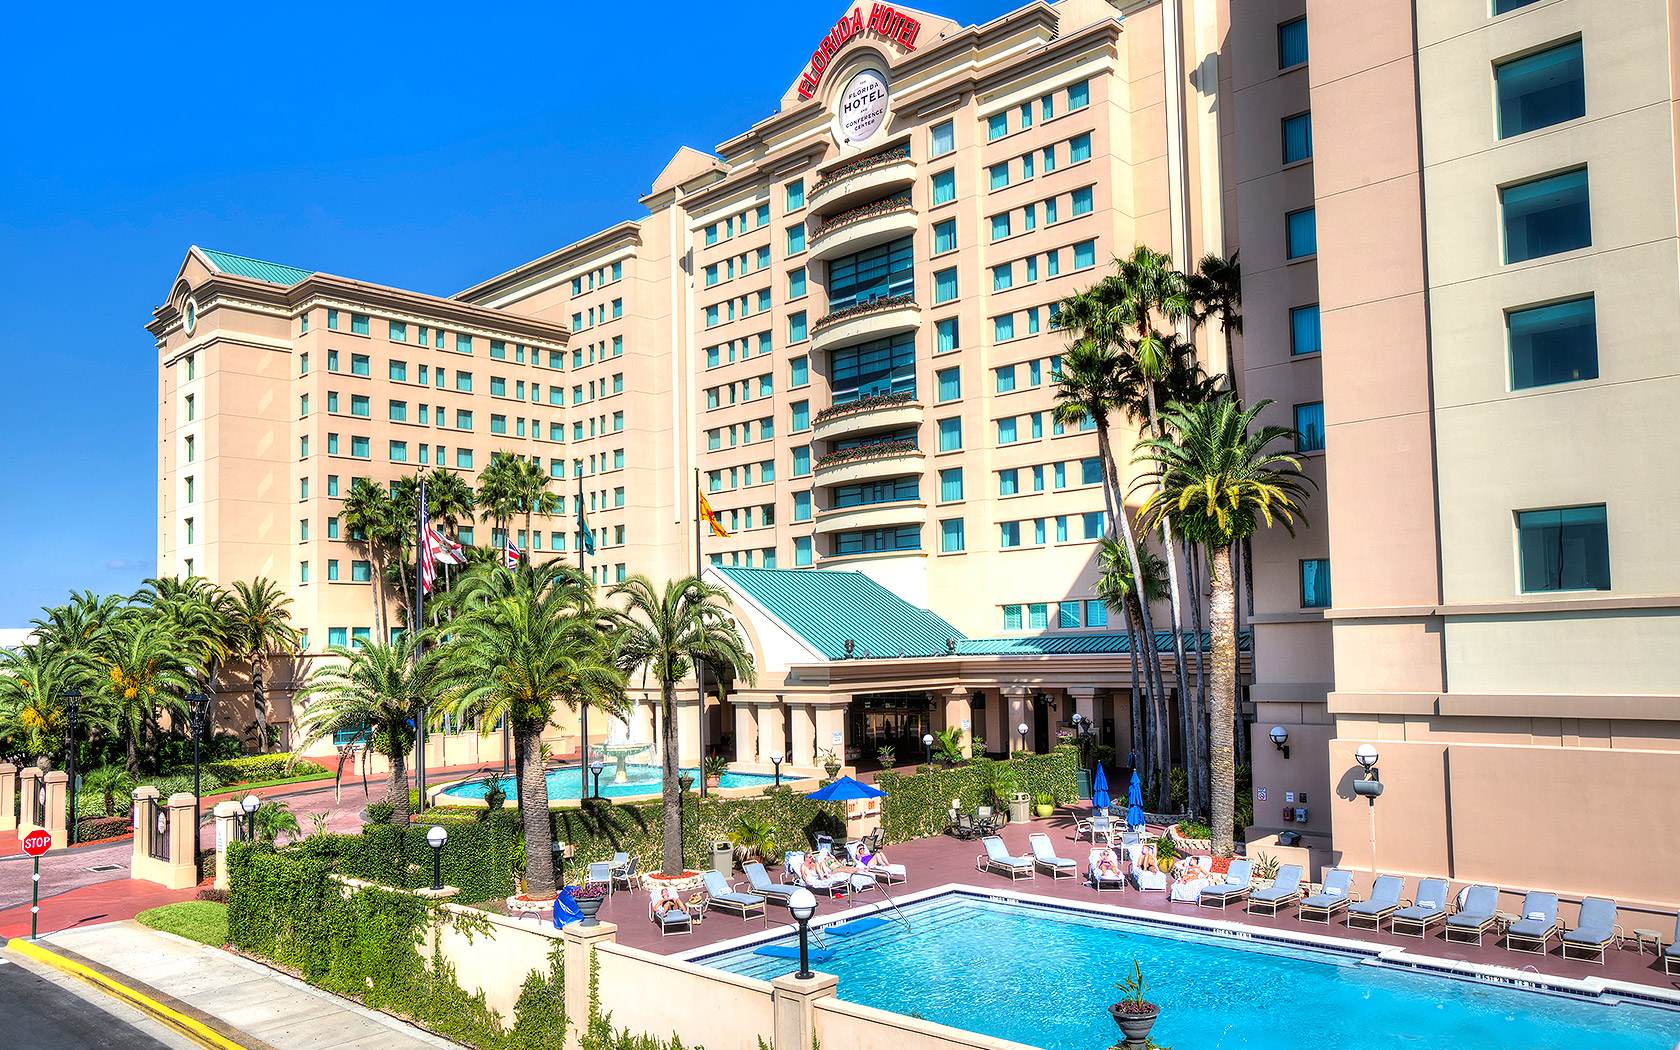 Hotels in Orlando | Official: Florida Hotel and Conference